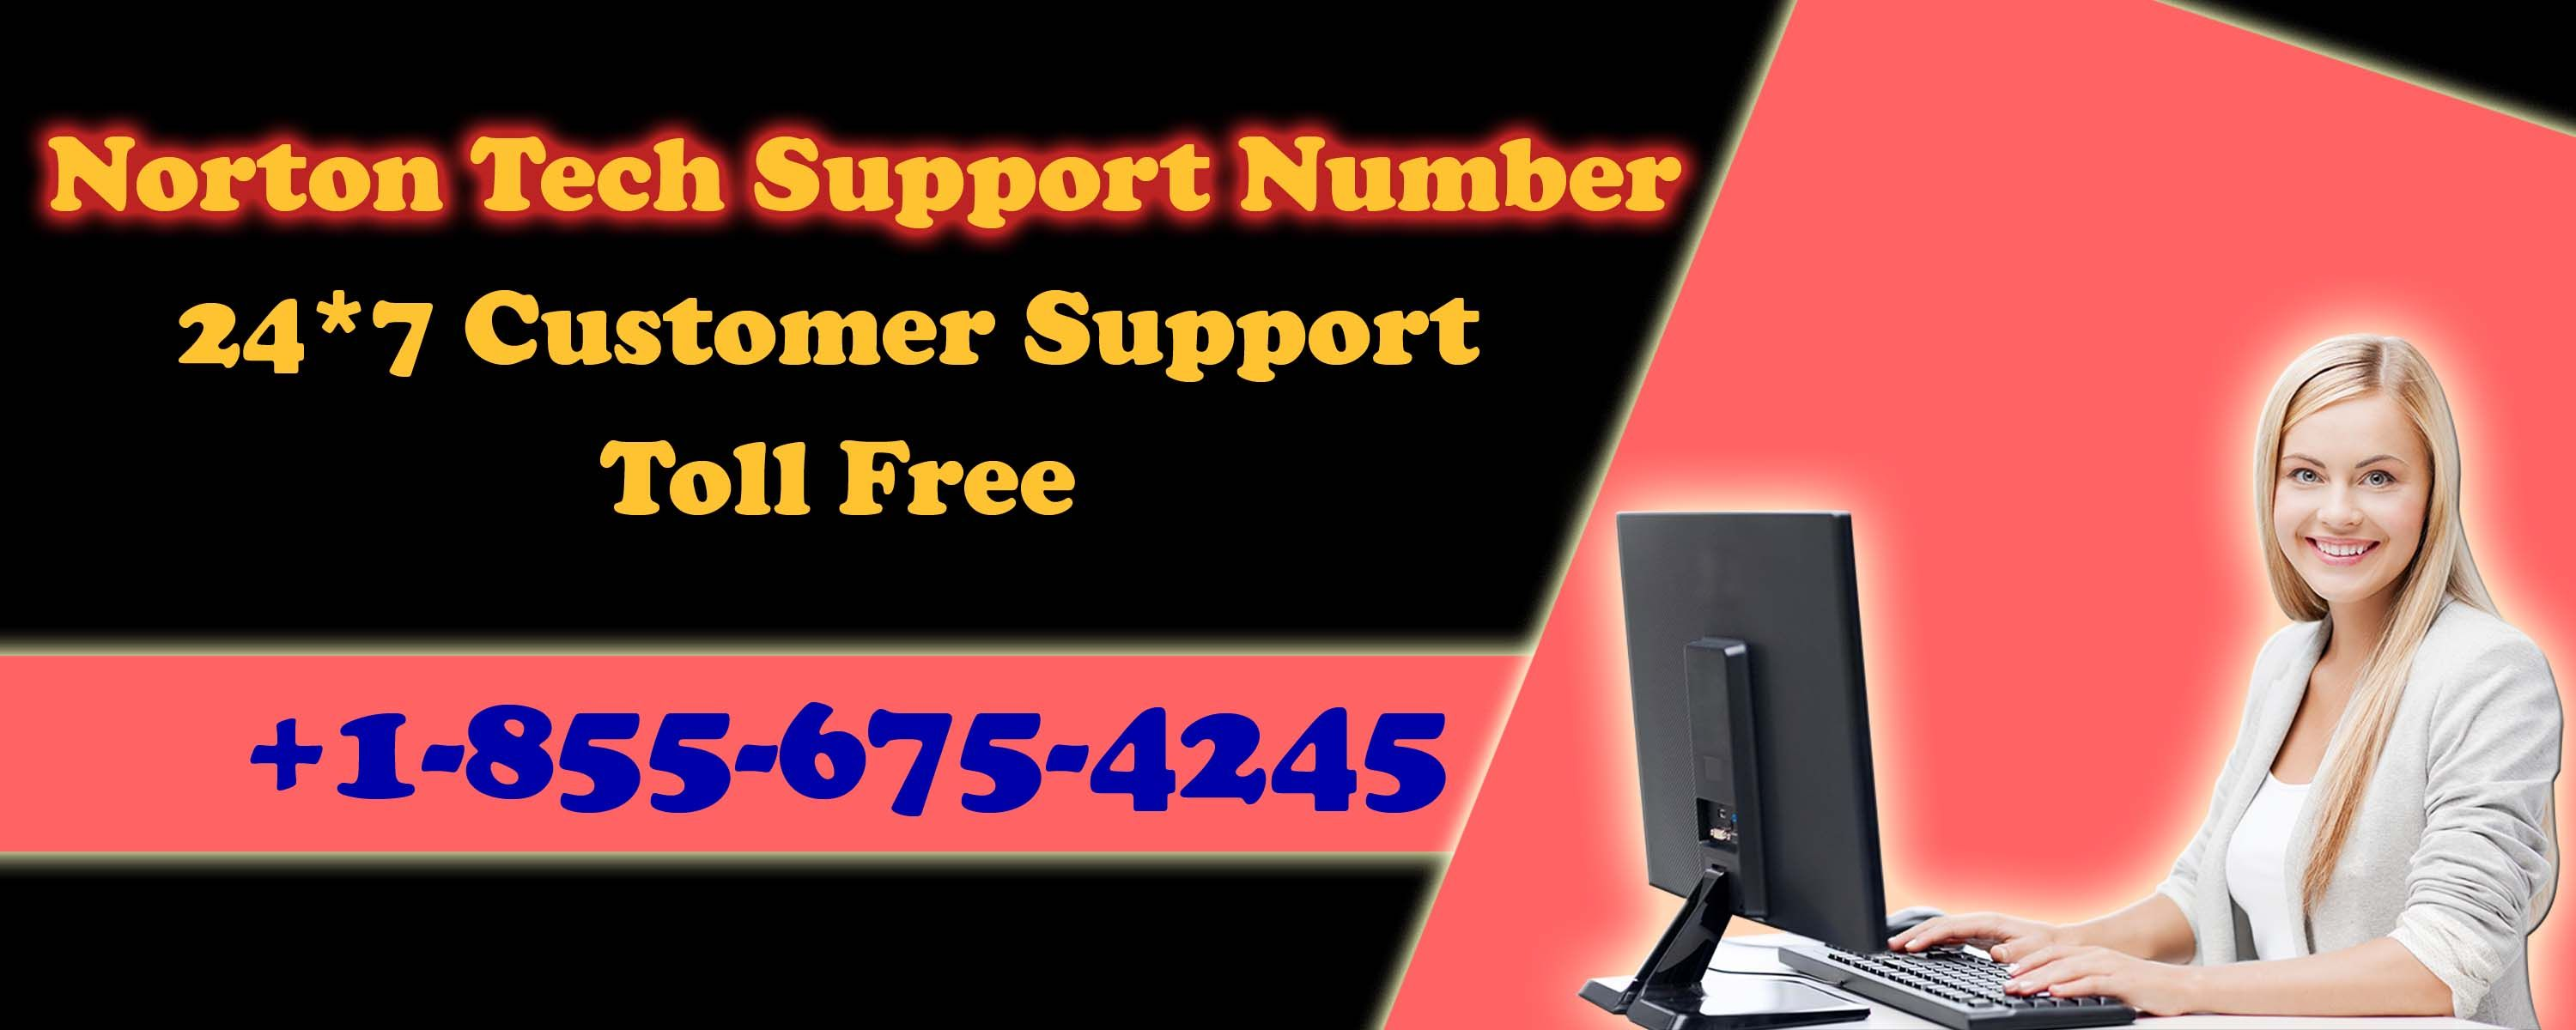 NortonTechSupportNumber +18556754245 get free support